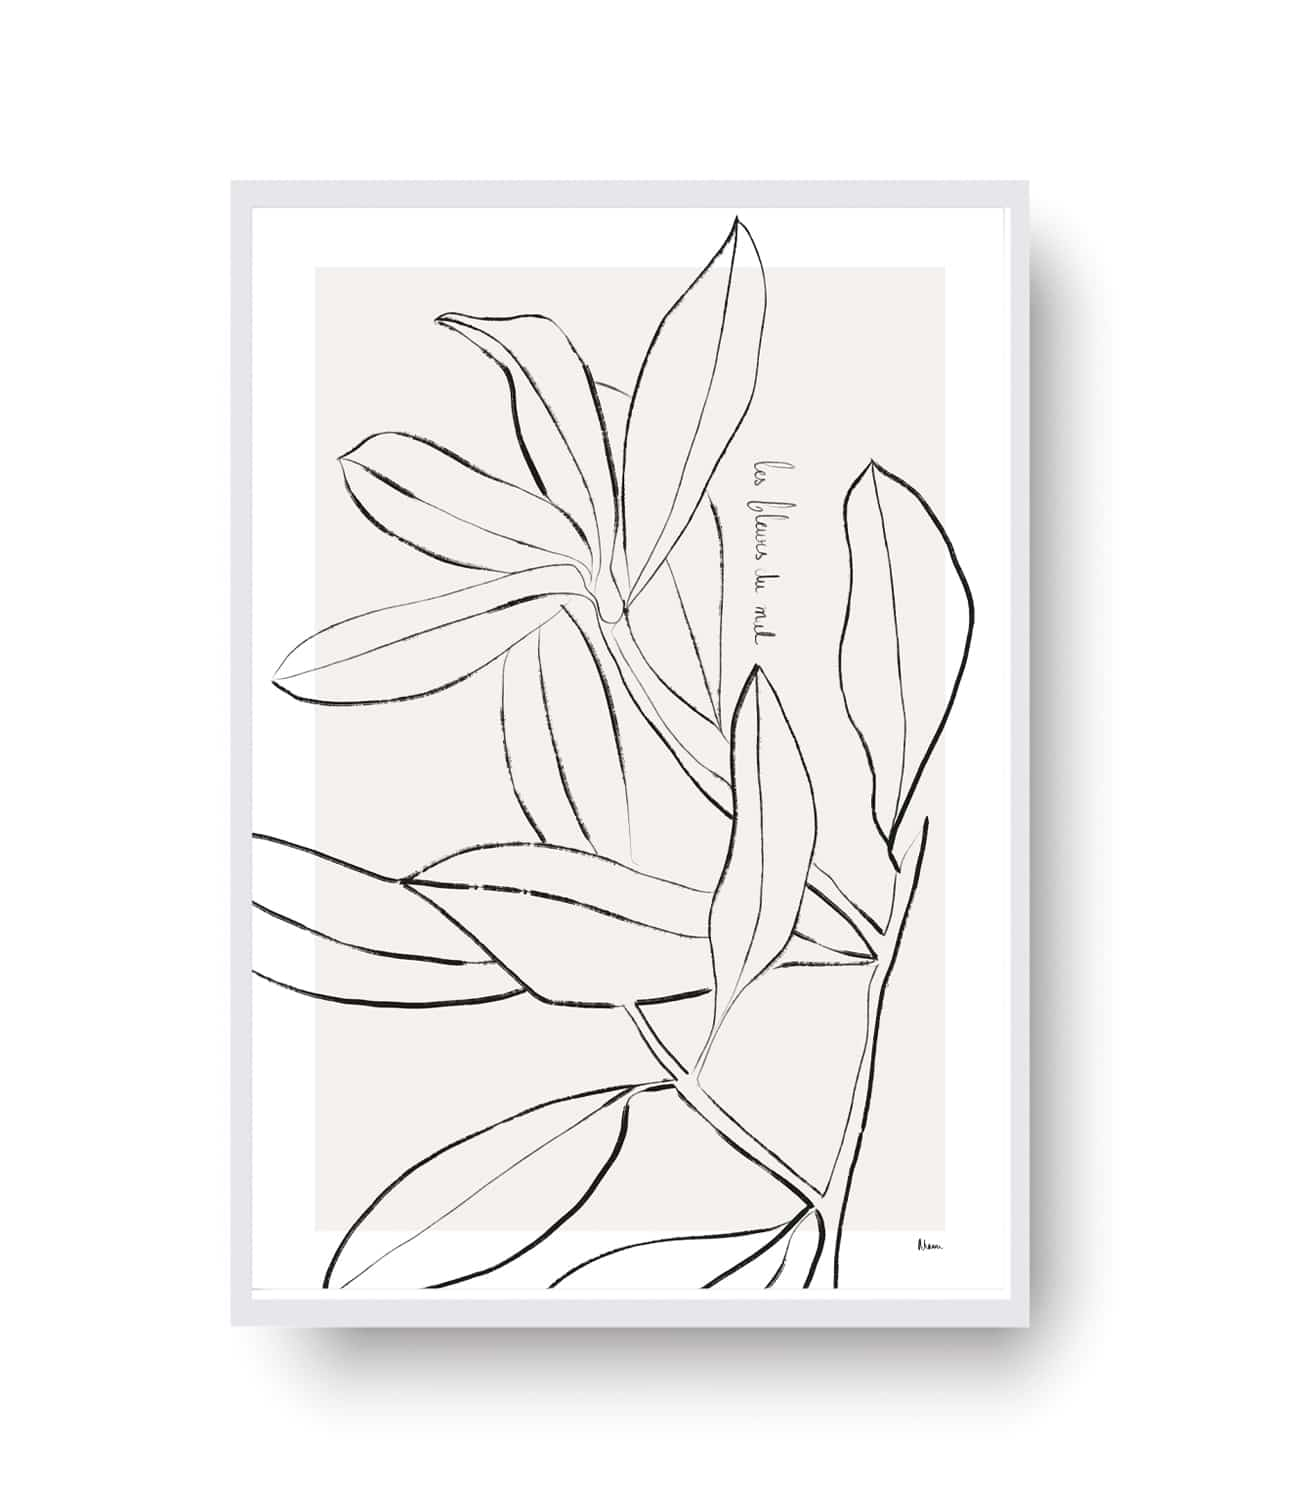 Les Fleurs du Mal in Line Art is composed as a visual metaphor of Les Fleurs du Mal, amajor work of French poetry by Charles Baudelaire